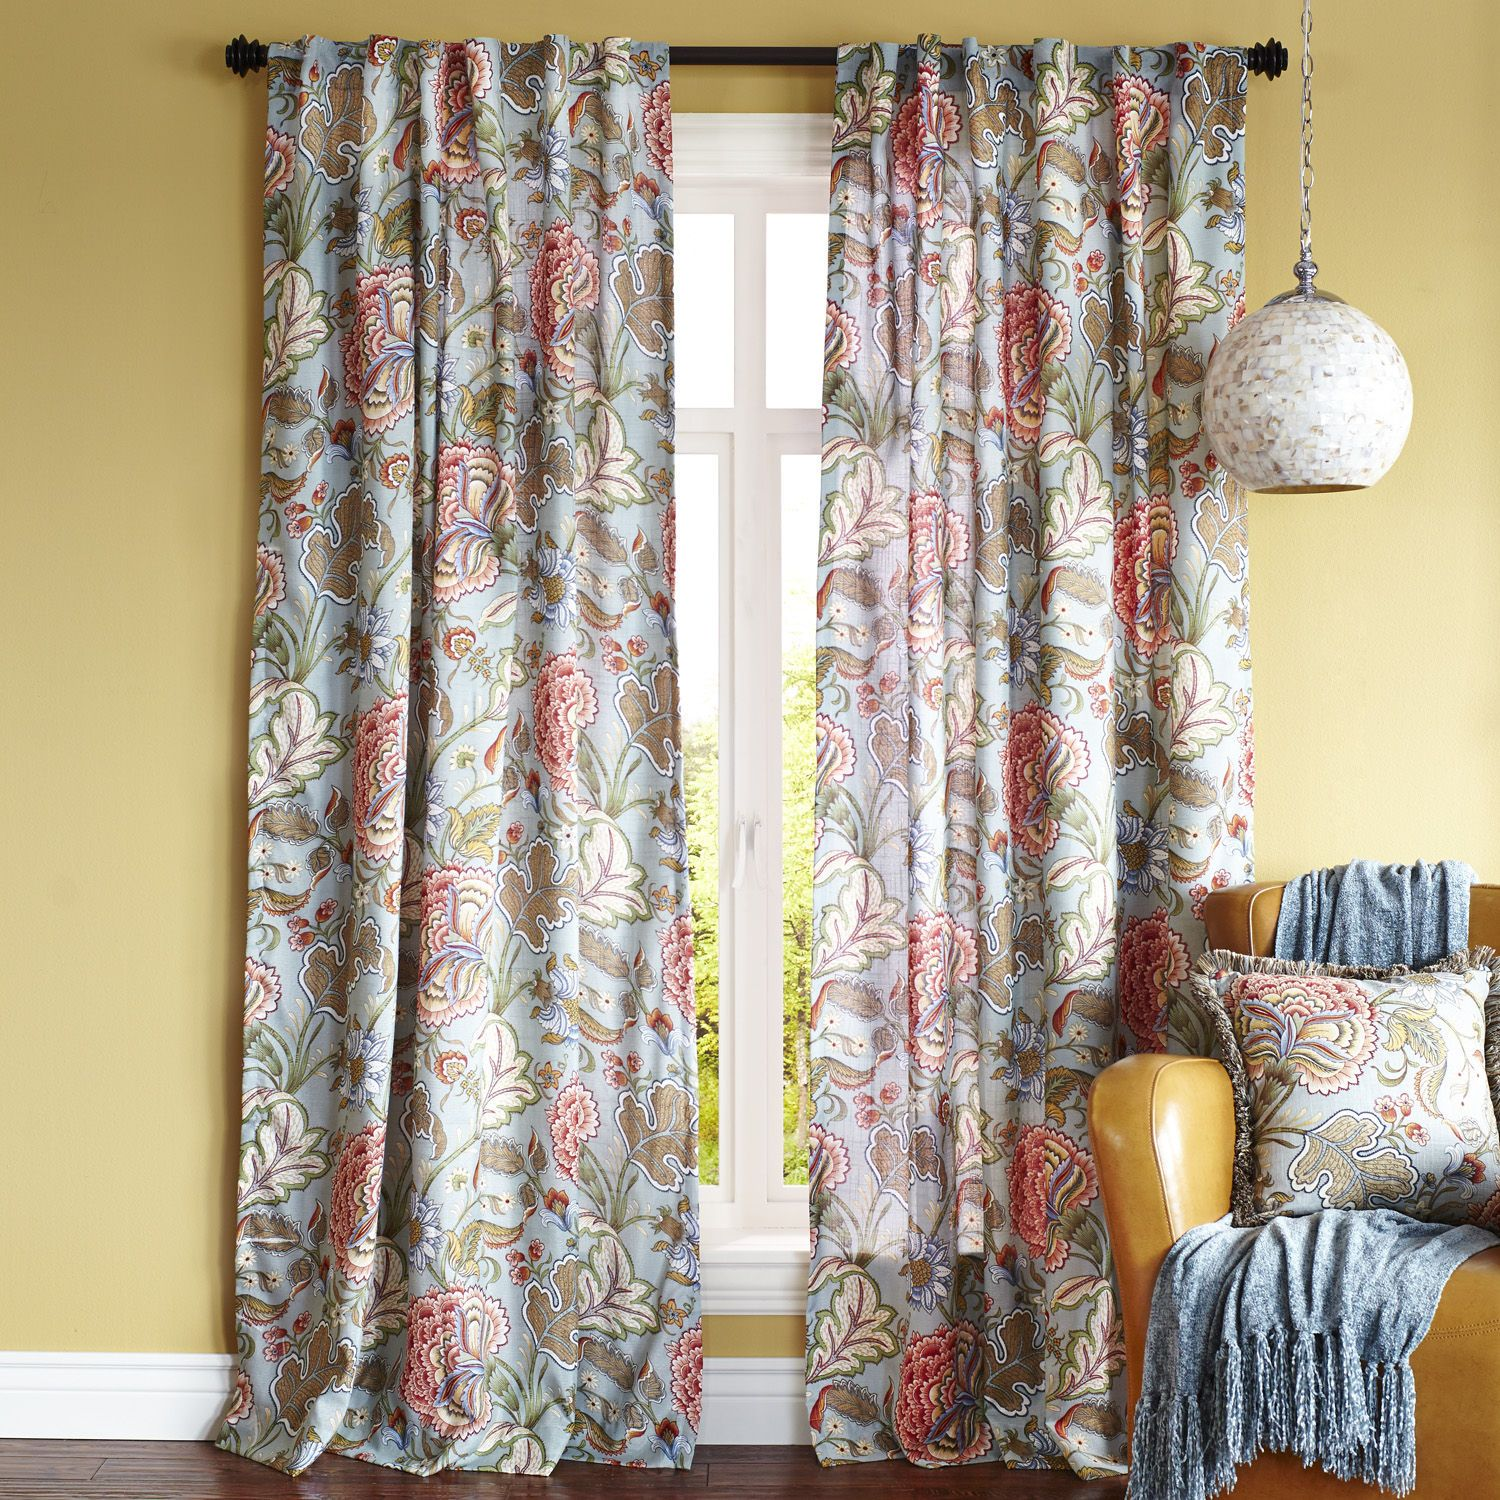 pier 1 living room rugs%0A Pier   Floral Curtains to match office chair  for office